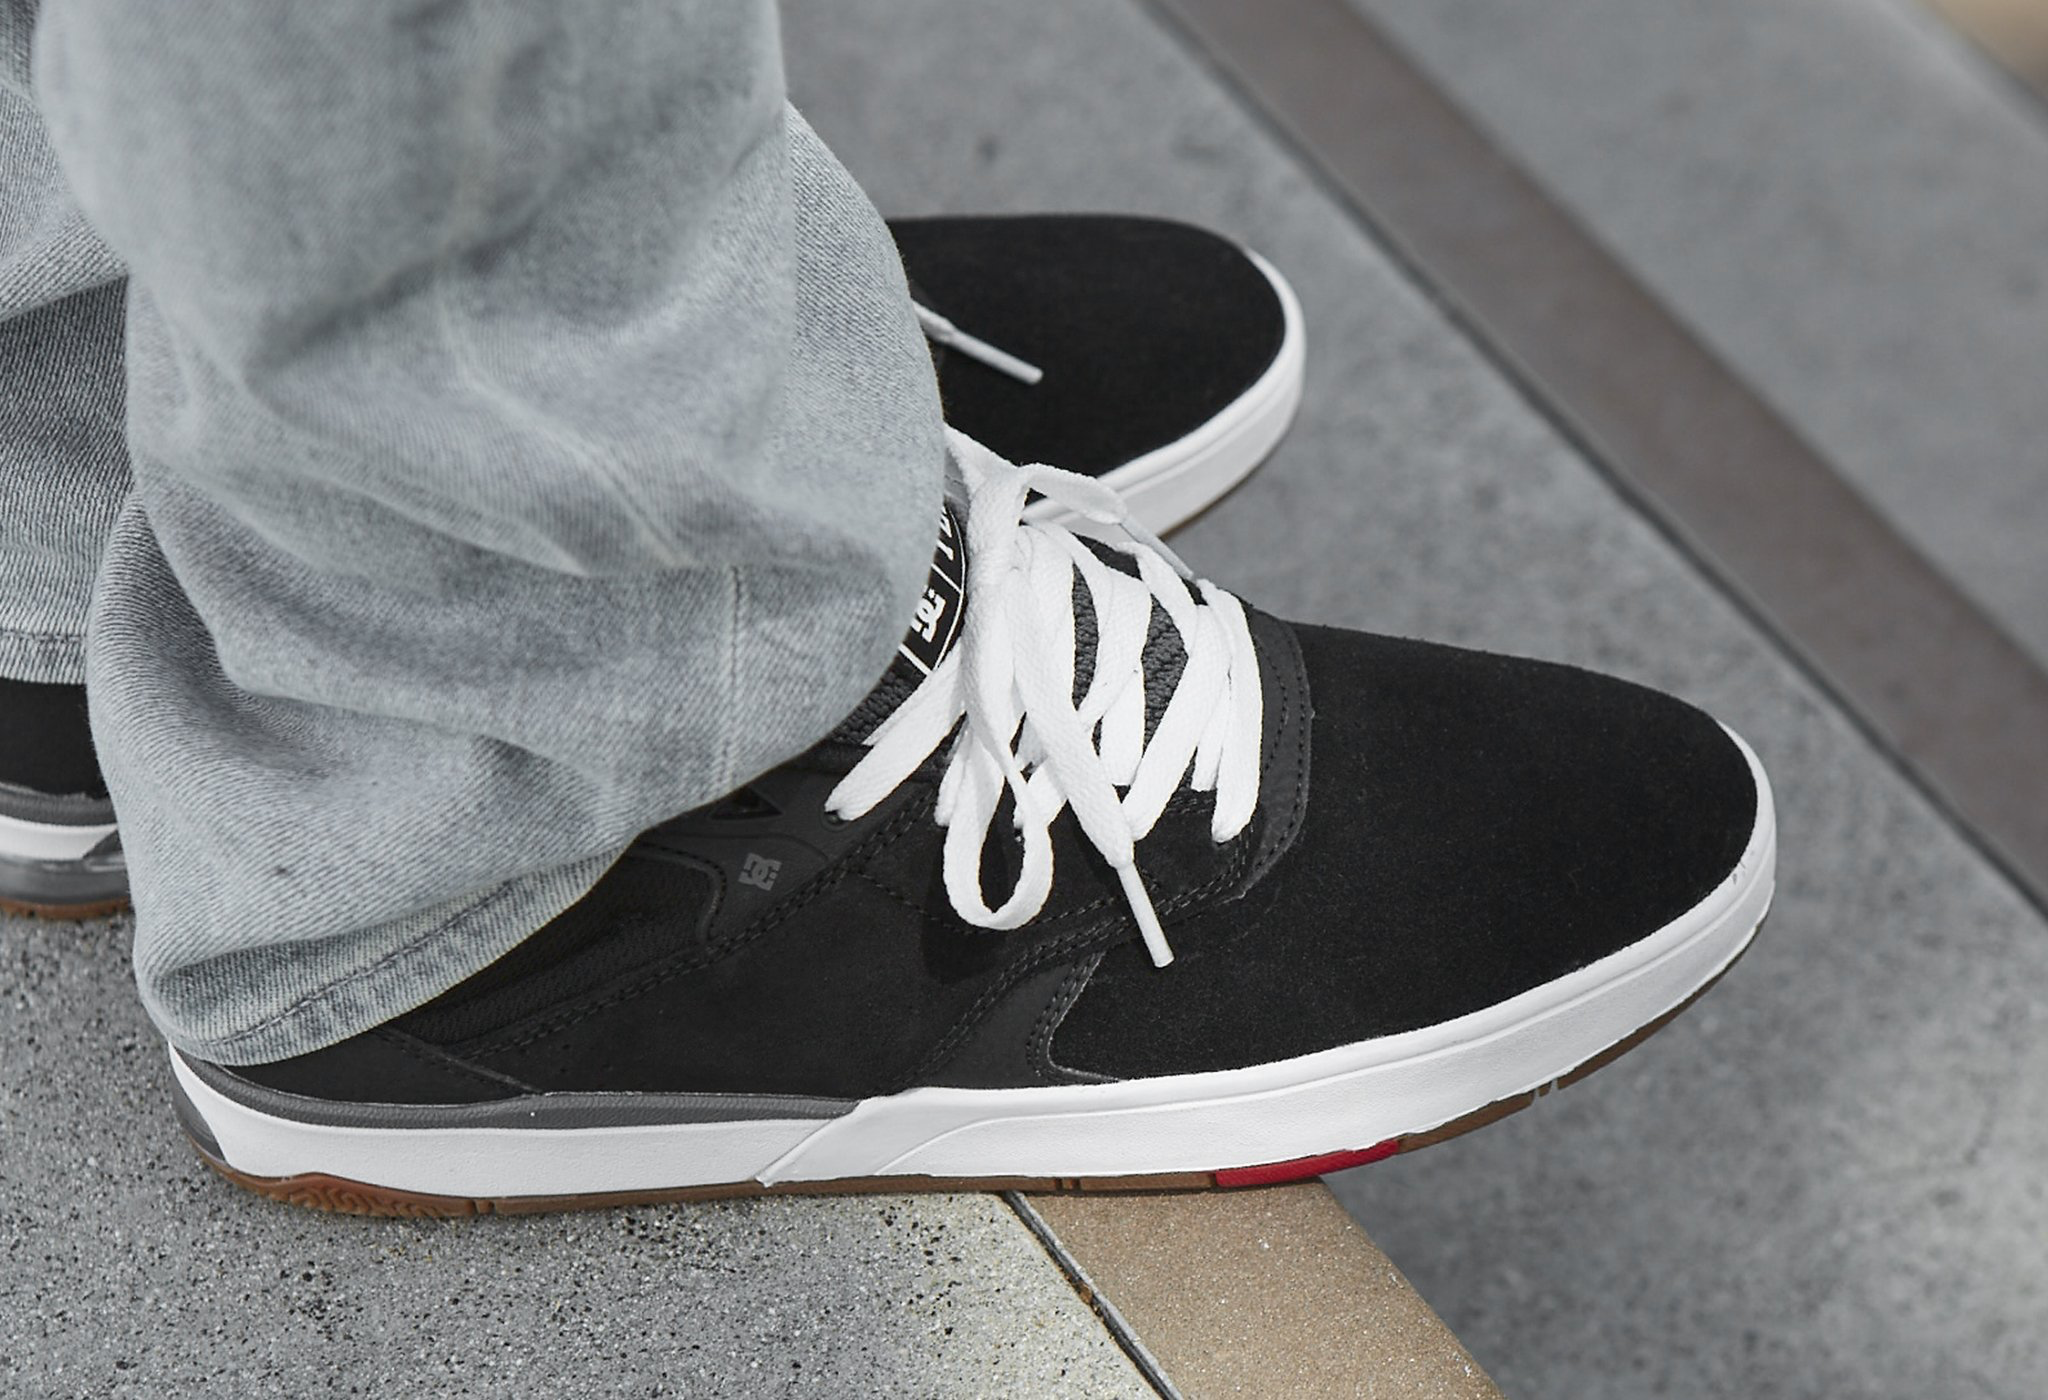 0cbe198b8561 DC s Got yours yet  What s the hold up ! The Tiago Lemos pro model is  available now at your local skate shop and dcshoes.com thetiago.